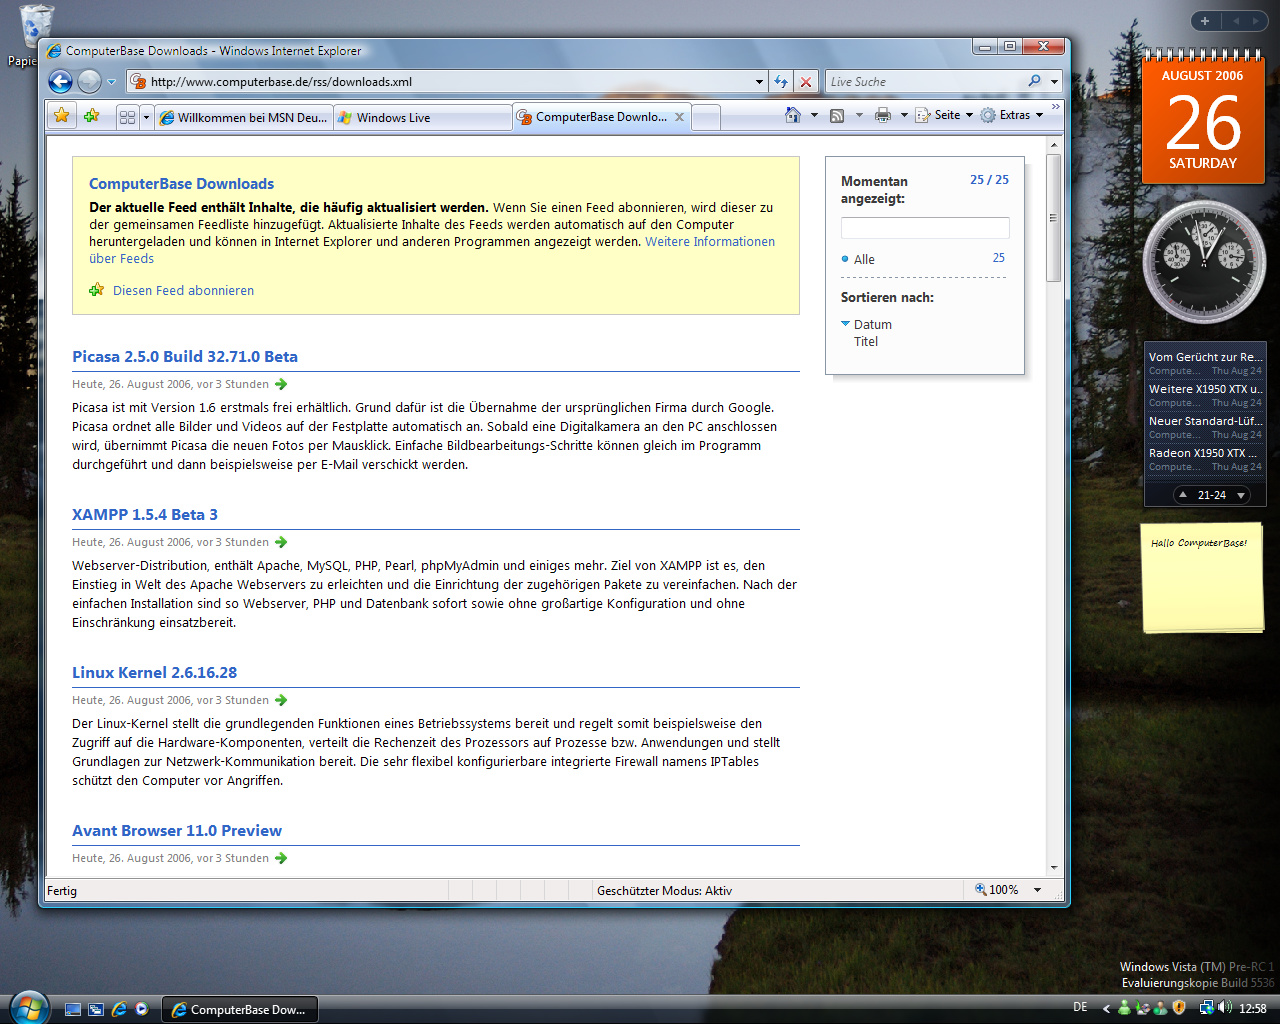 Windows Vista Build 5536 - Internet Explorer 7.0 mit RSS-Unterstützung